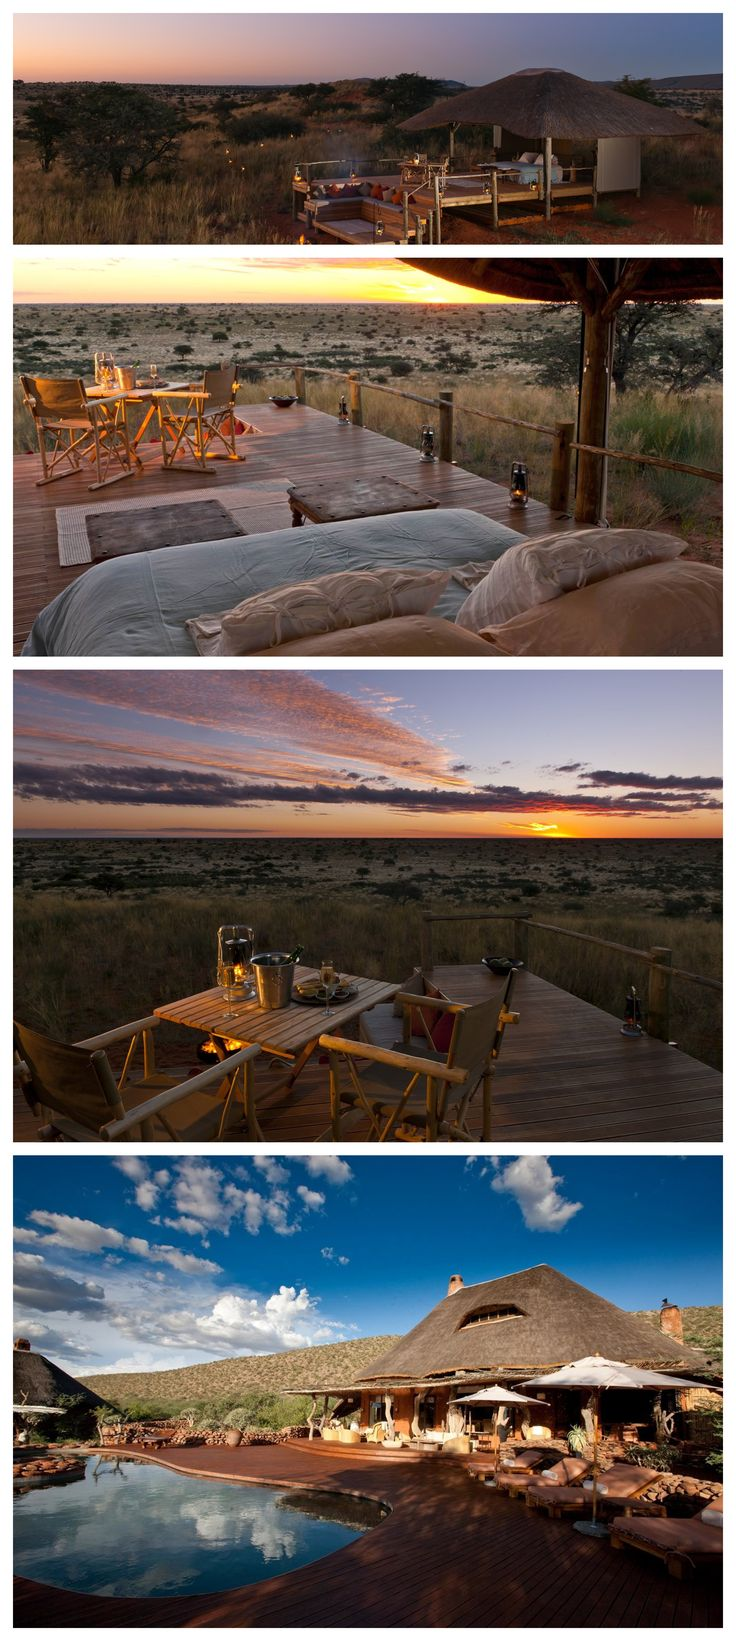 The ultimate in luxury game reserves, Tswalu Kalahari Lodge is in the southern Kalahari, in South Africa's Northern Cape Province